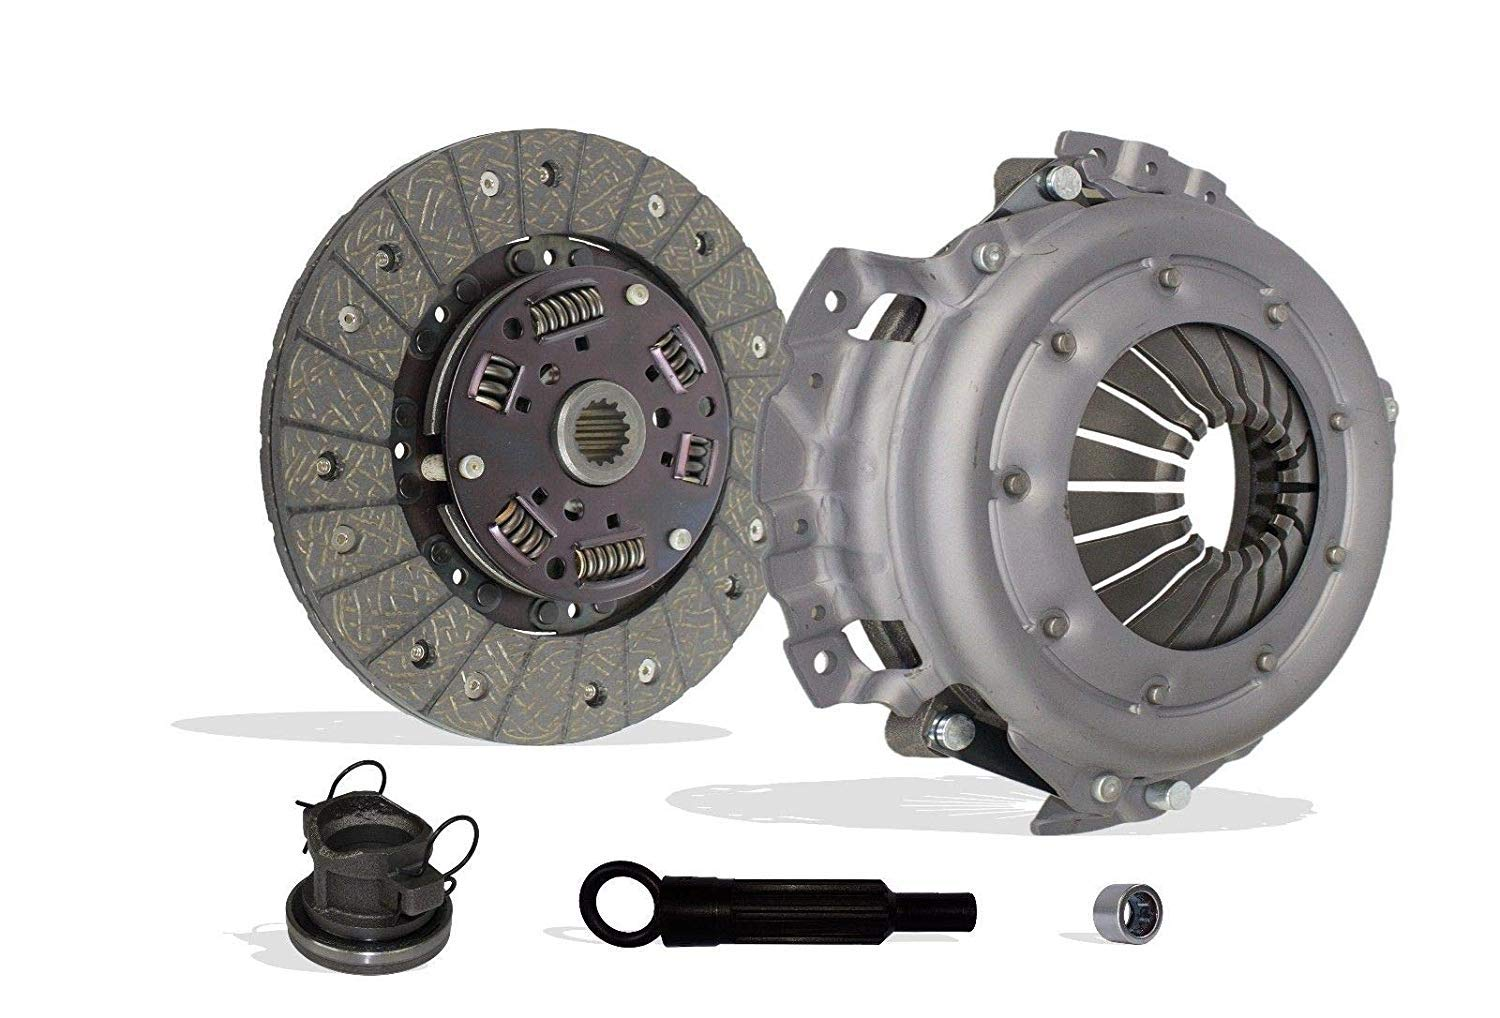 In Clutch Kit Works With Jeep Tj Wrangler Cherokee Base Se Rio Grande S Sport Utility 2-Door 1994-2002 2.5L 150Cu 4 CylindersL4, 2.5L l4 GAS OHV Naturally Aspirated